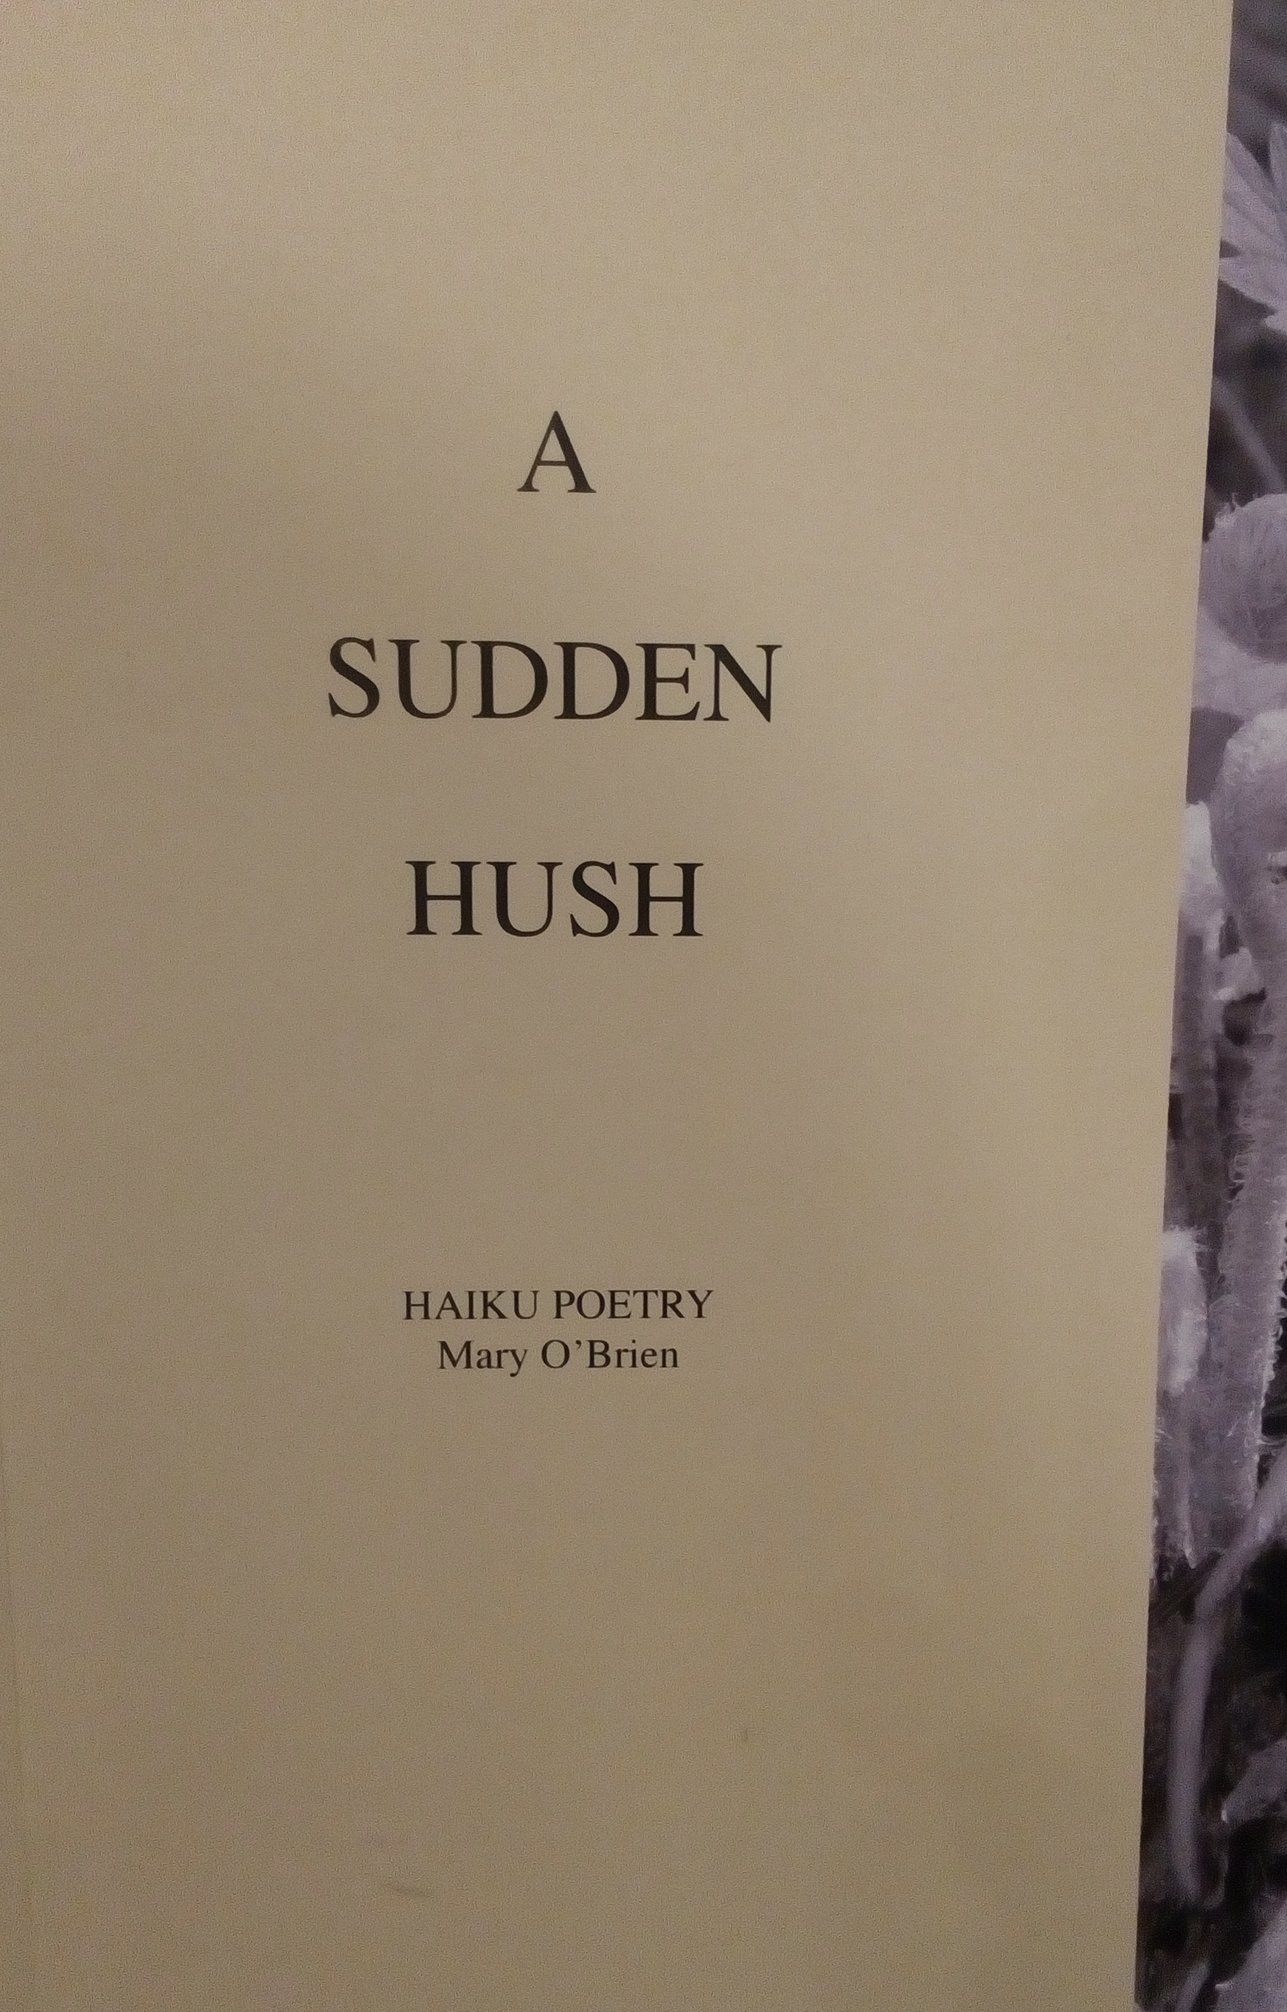 A Sudden Hush by Mary O'Brien